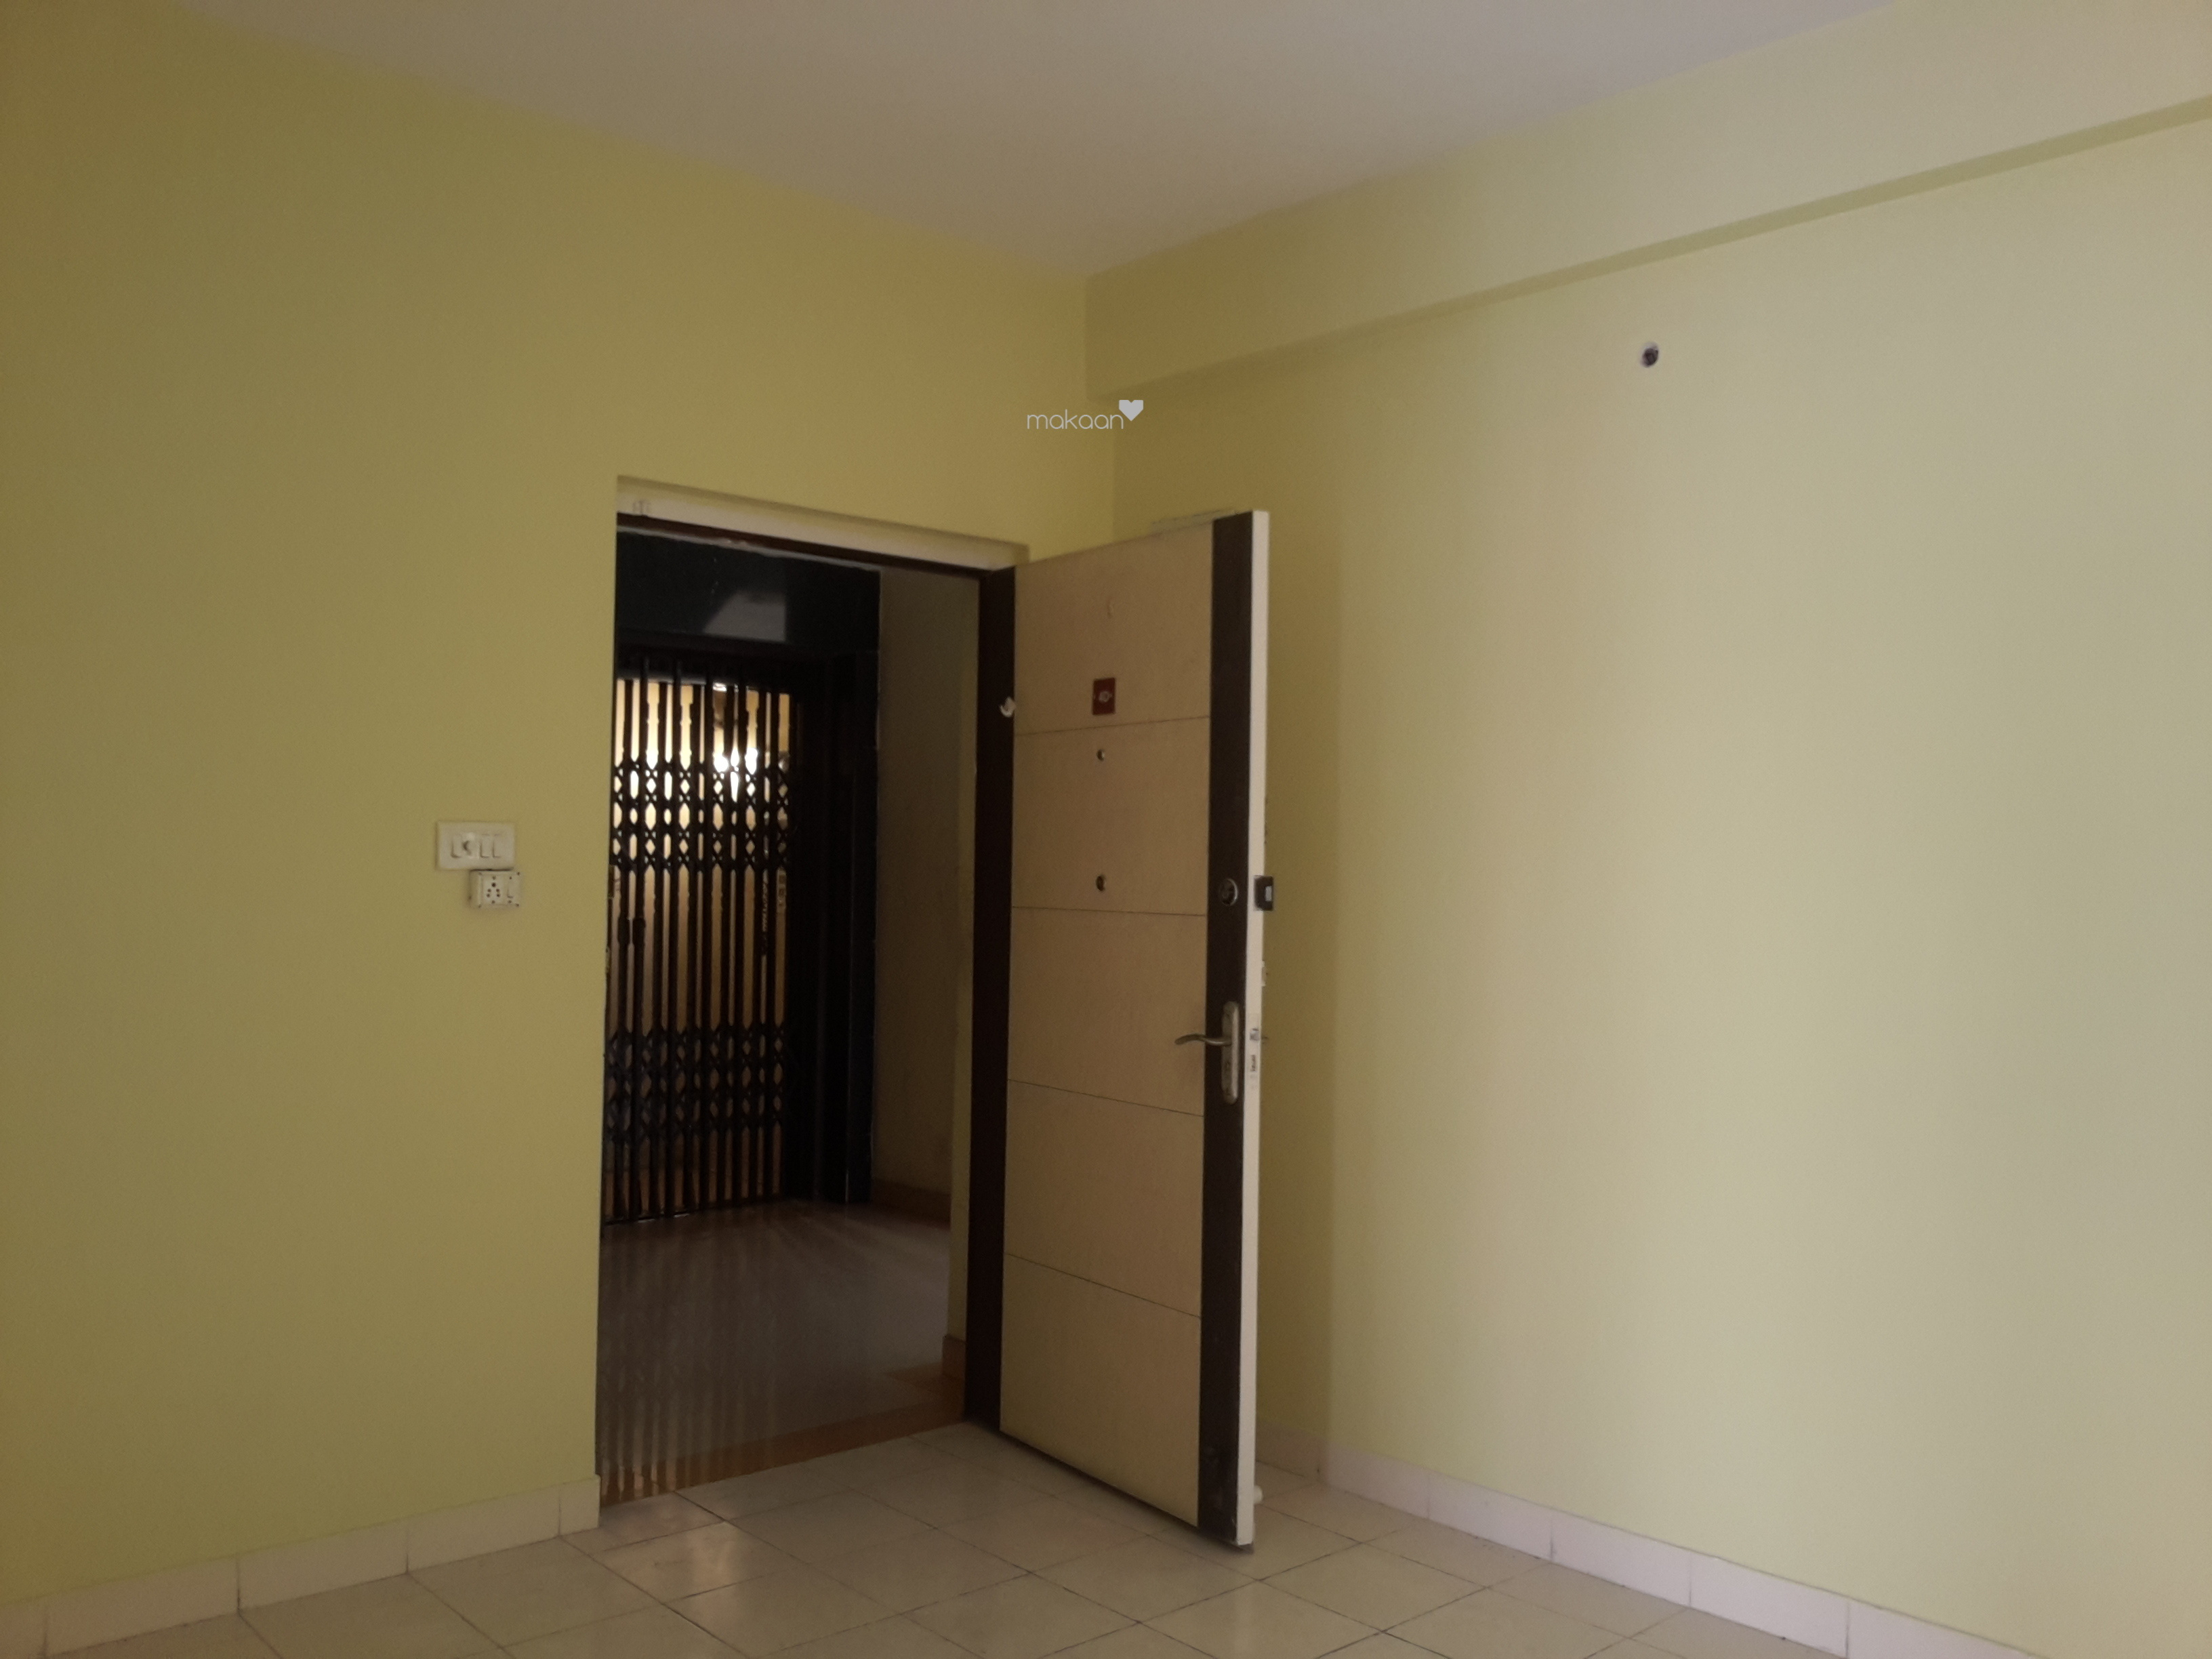 989 sq ft 2BHK 2BHK+2T (989 sq ft) Property By Proptiger In Sherwood Estate, Narendrapur